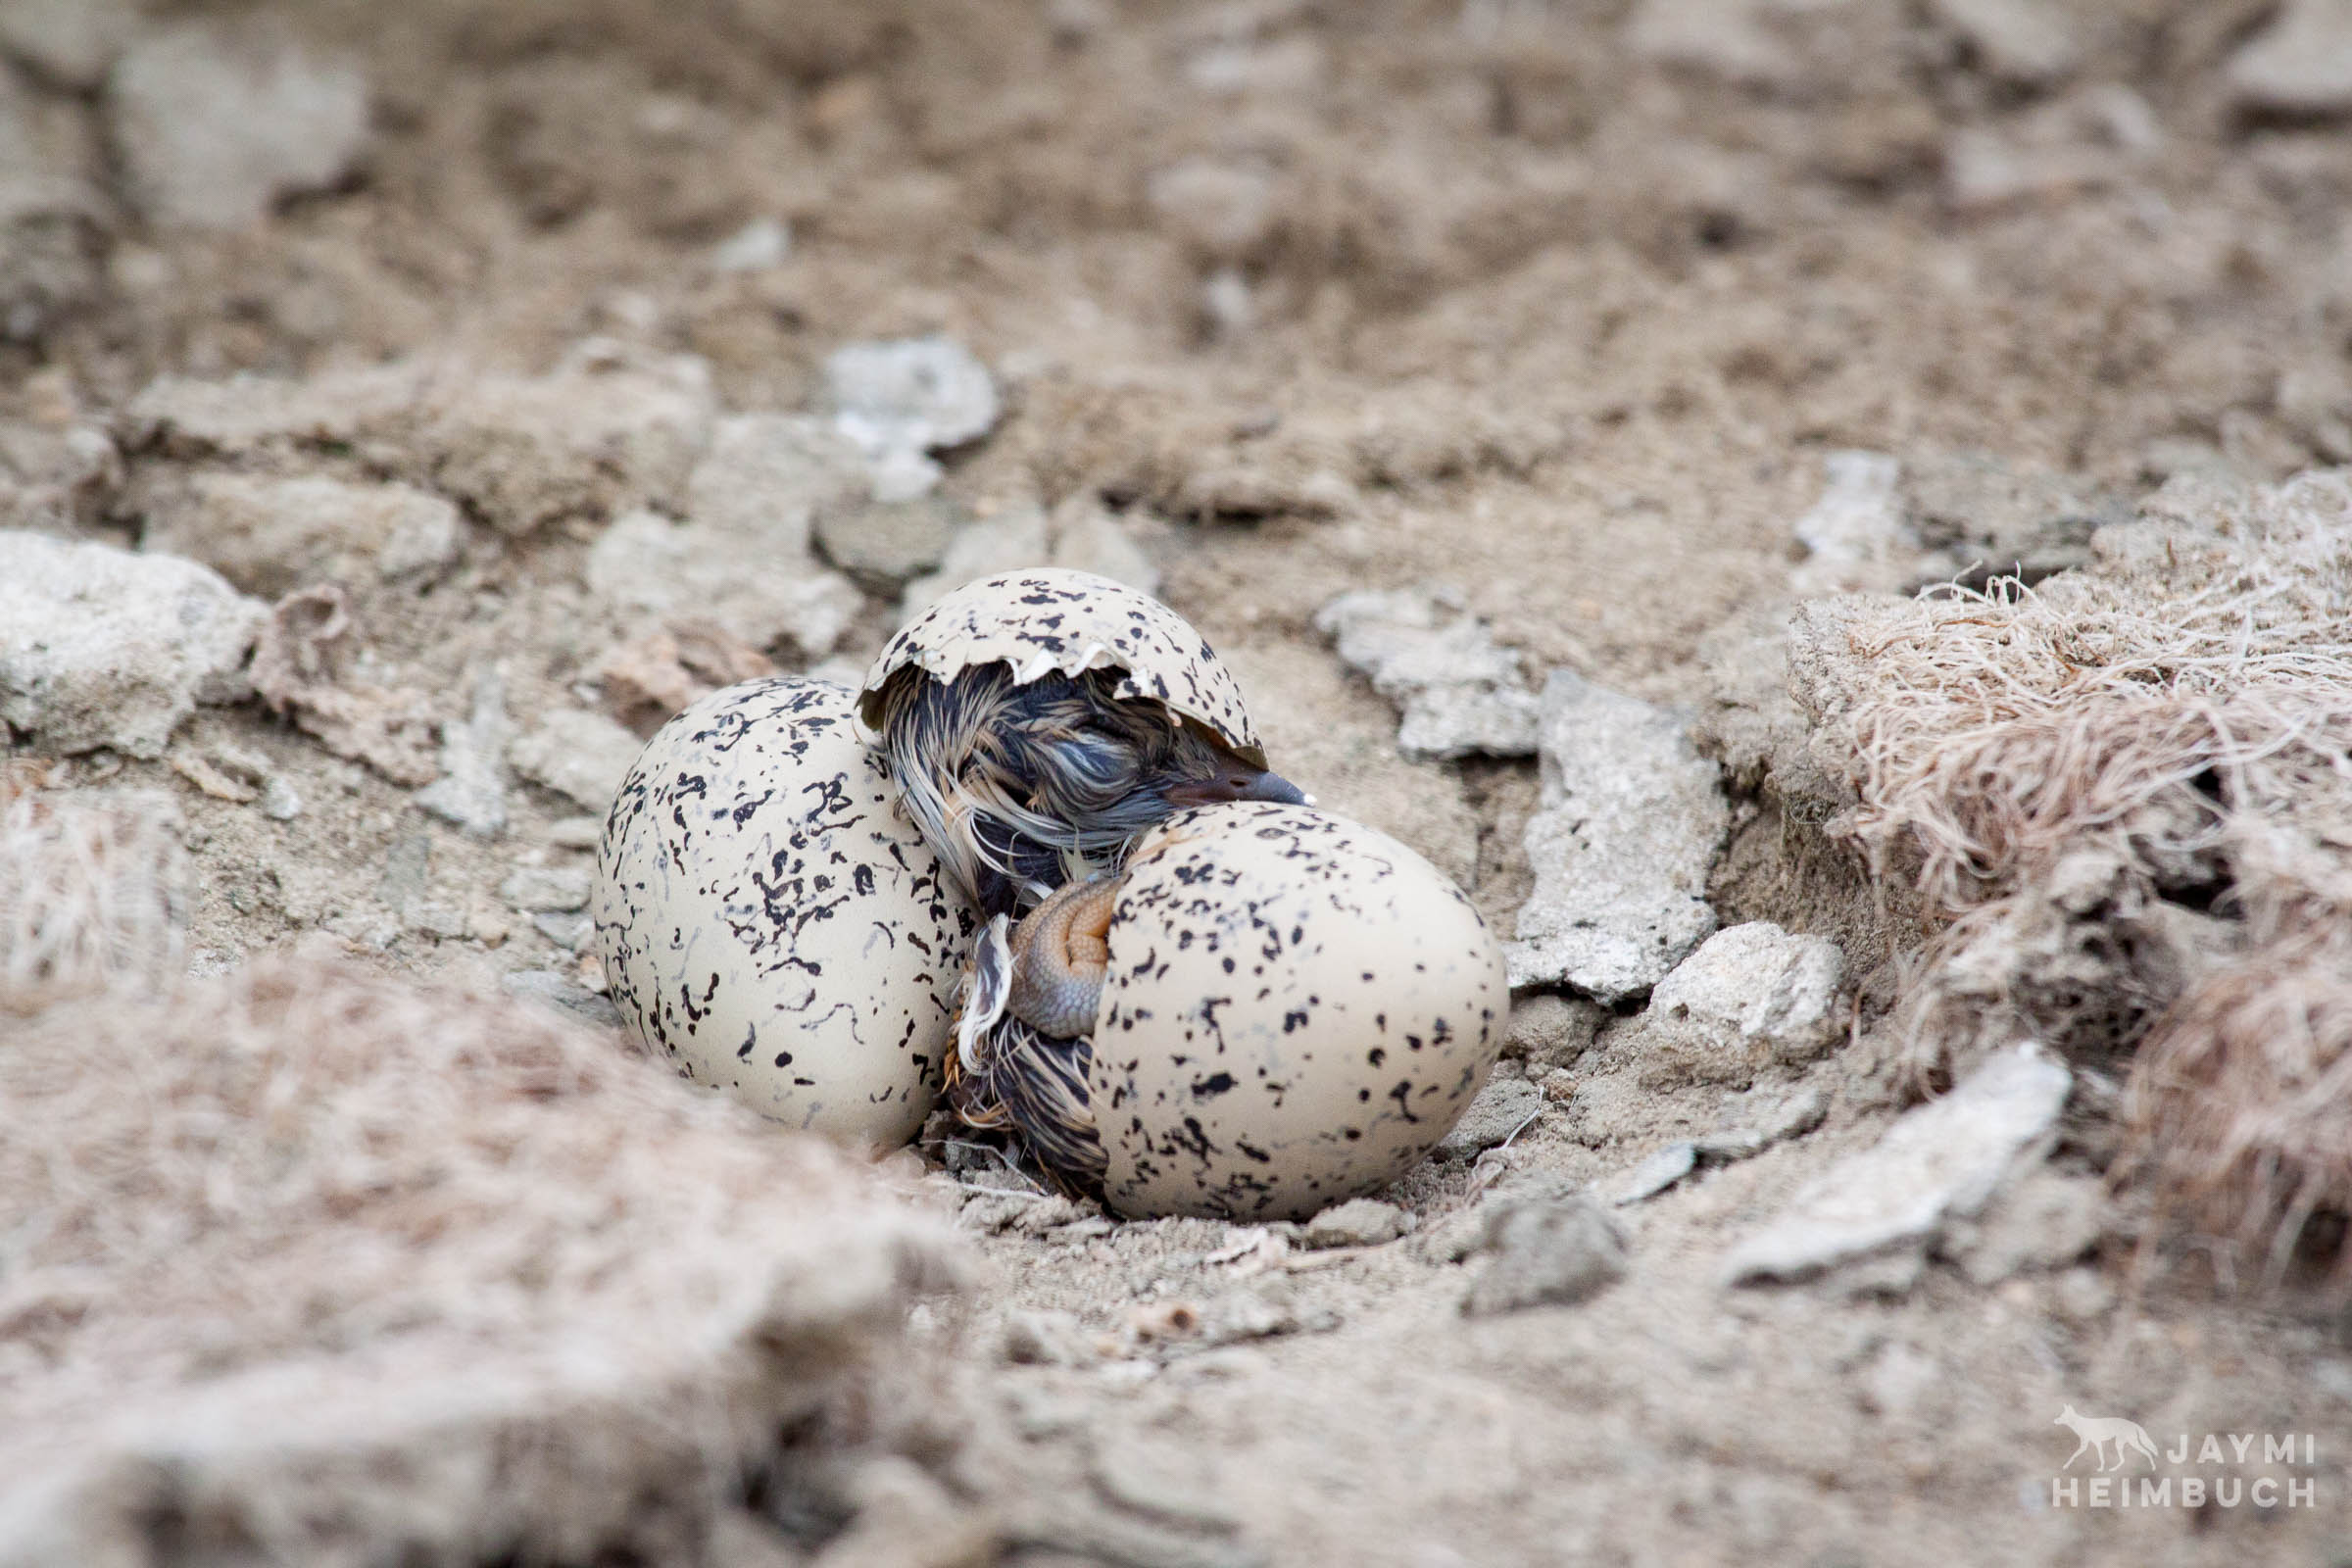 Western snowy plover chick just hatched